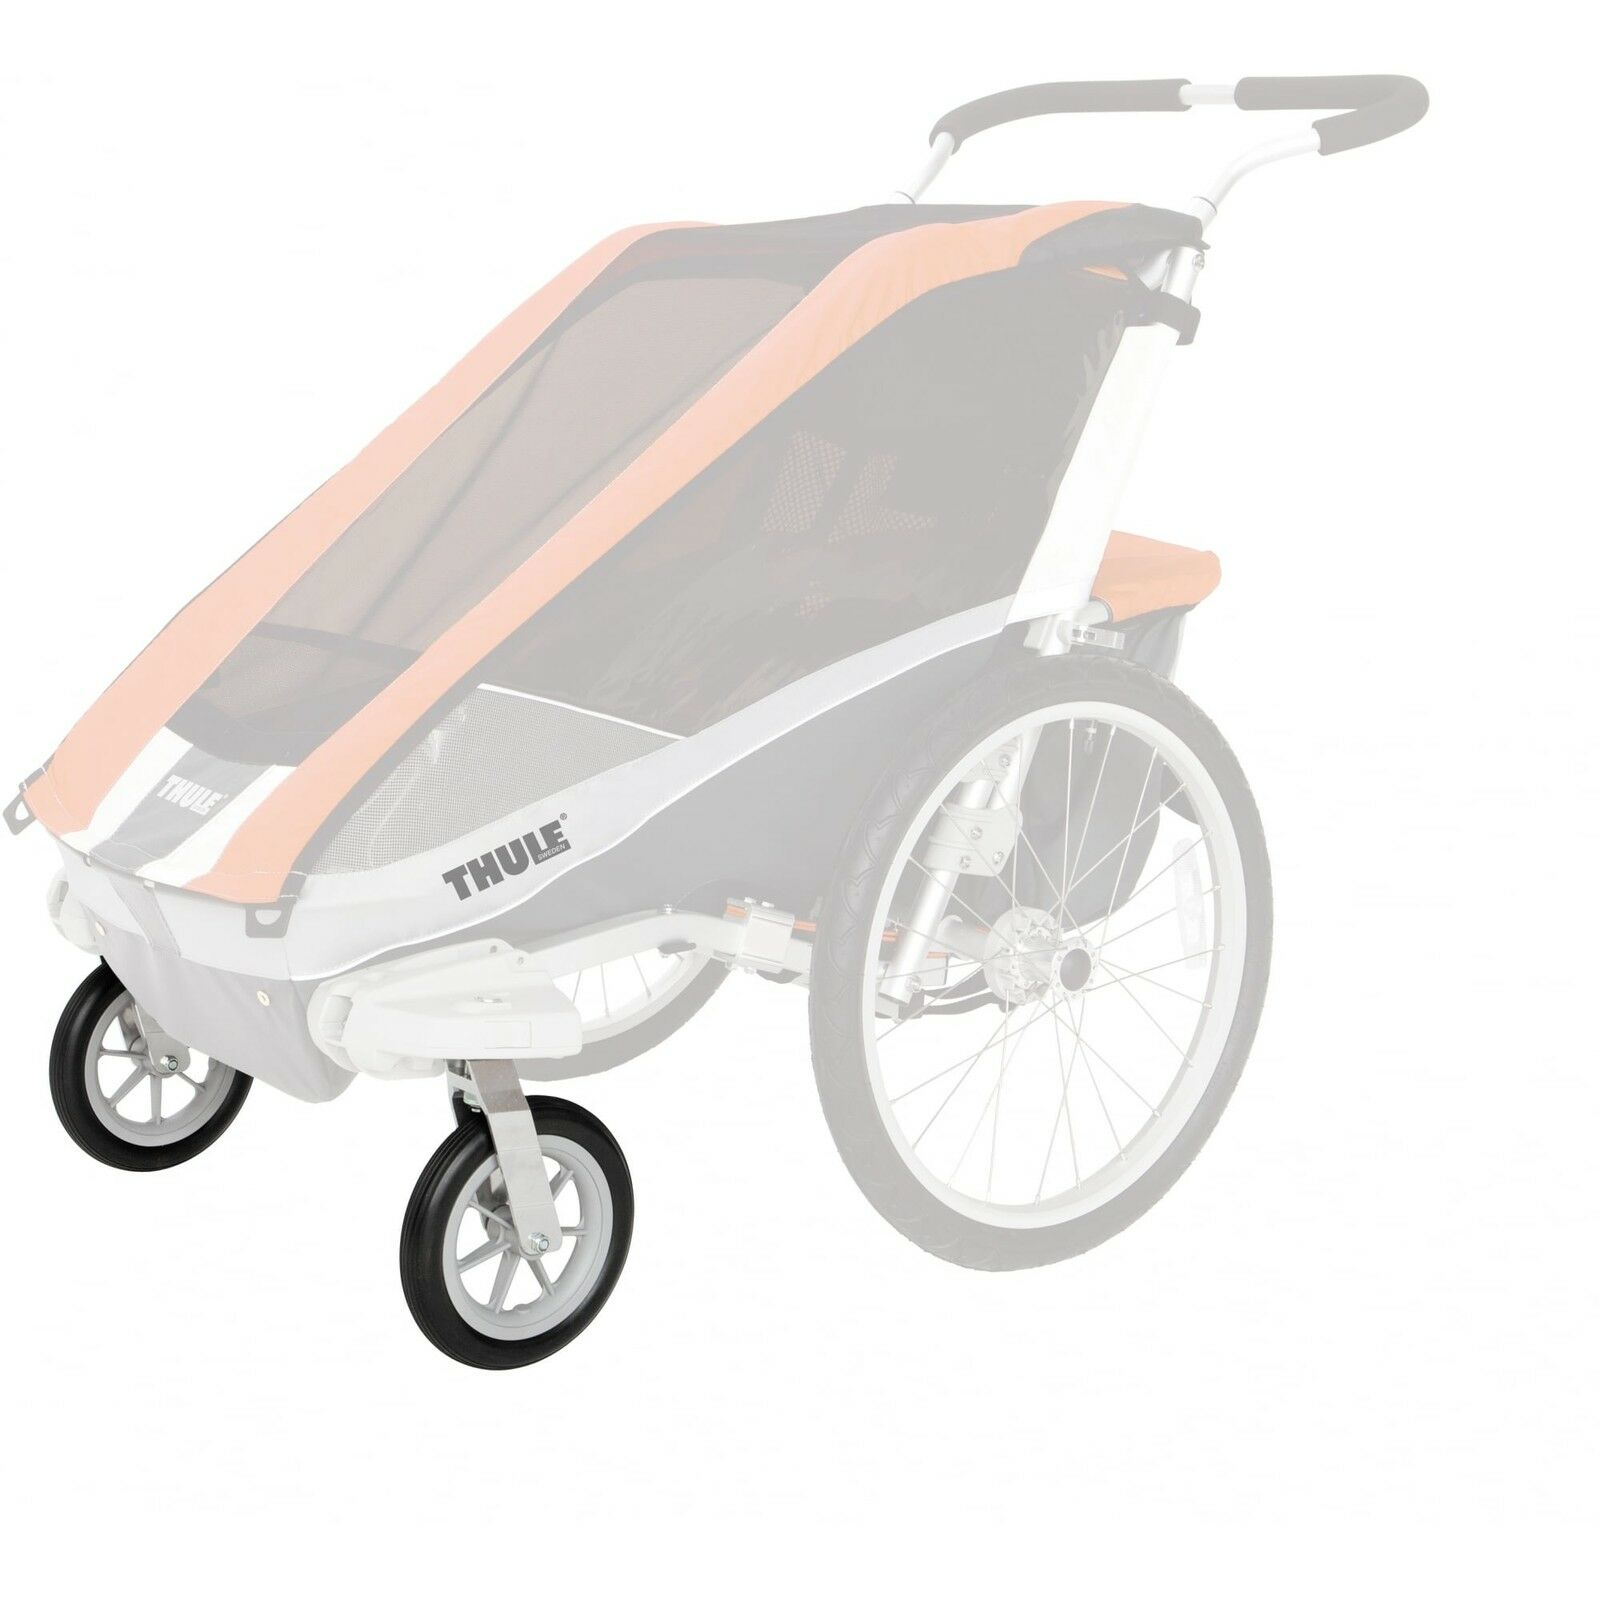 Thule Chariot  Thule Chariot Strolling CTS Kit  online at best price